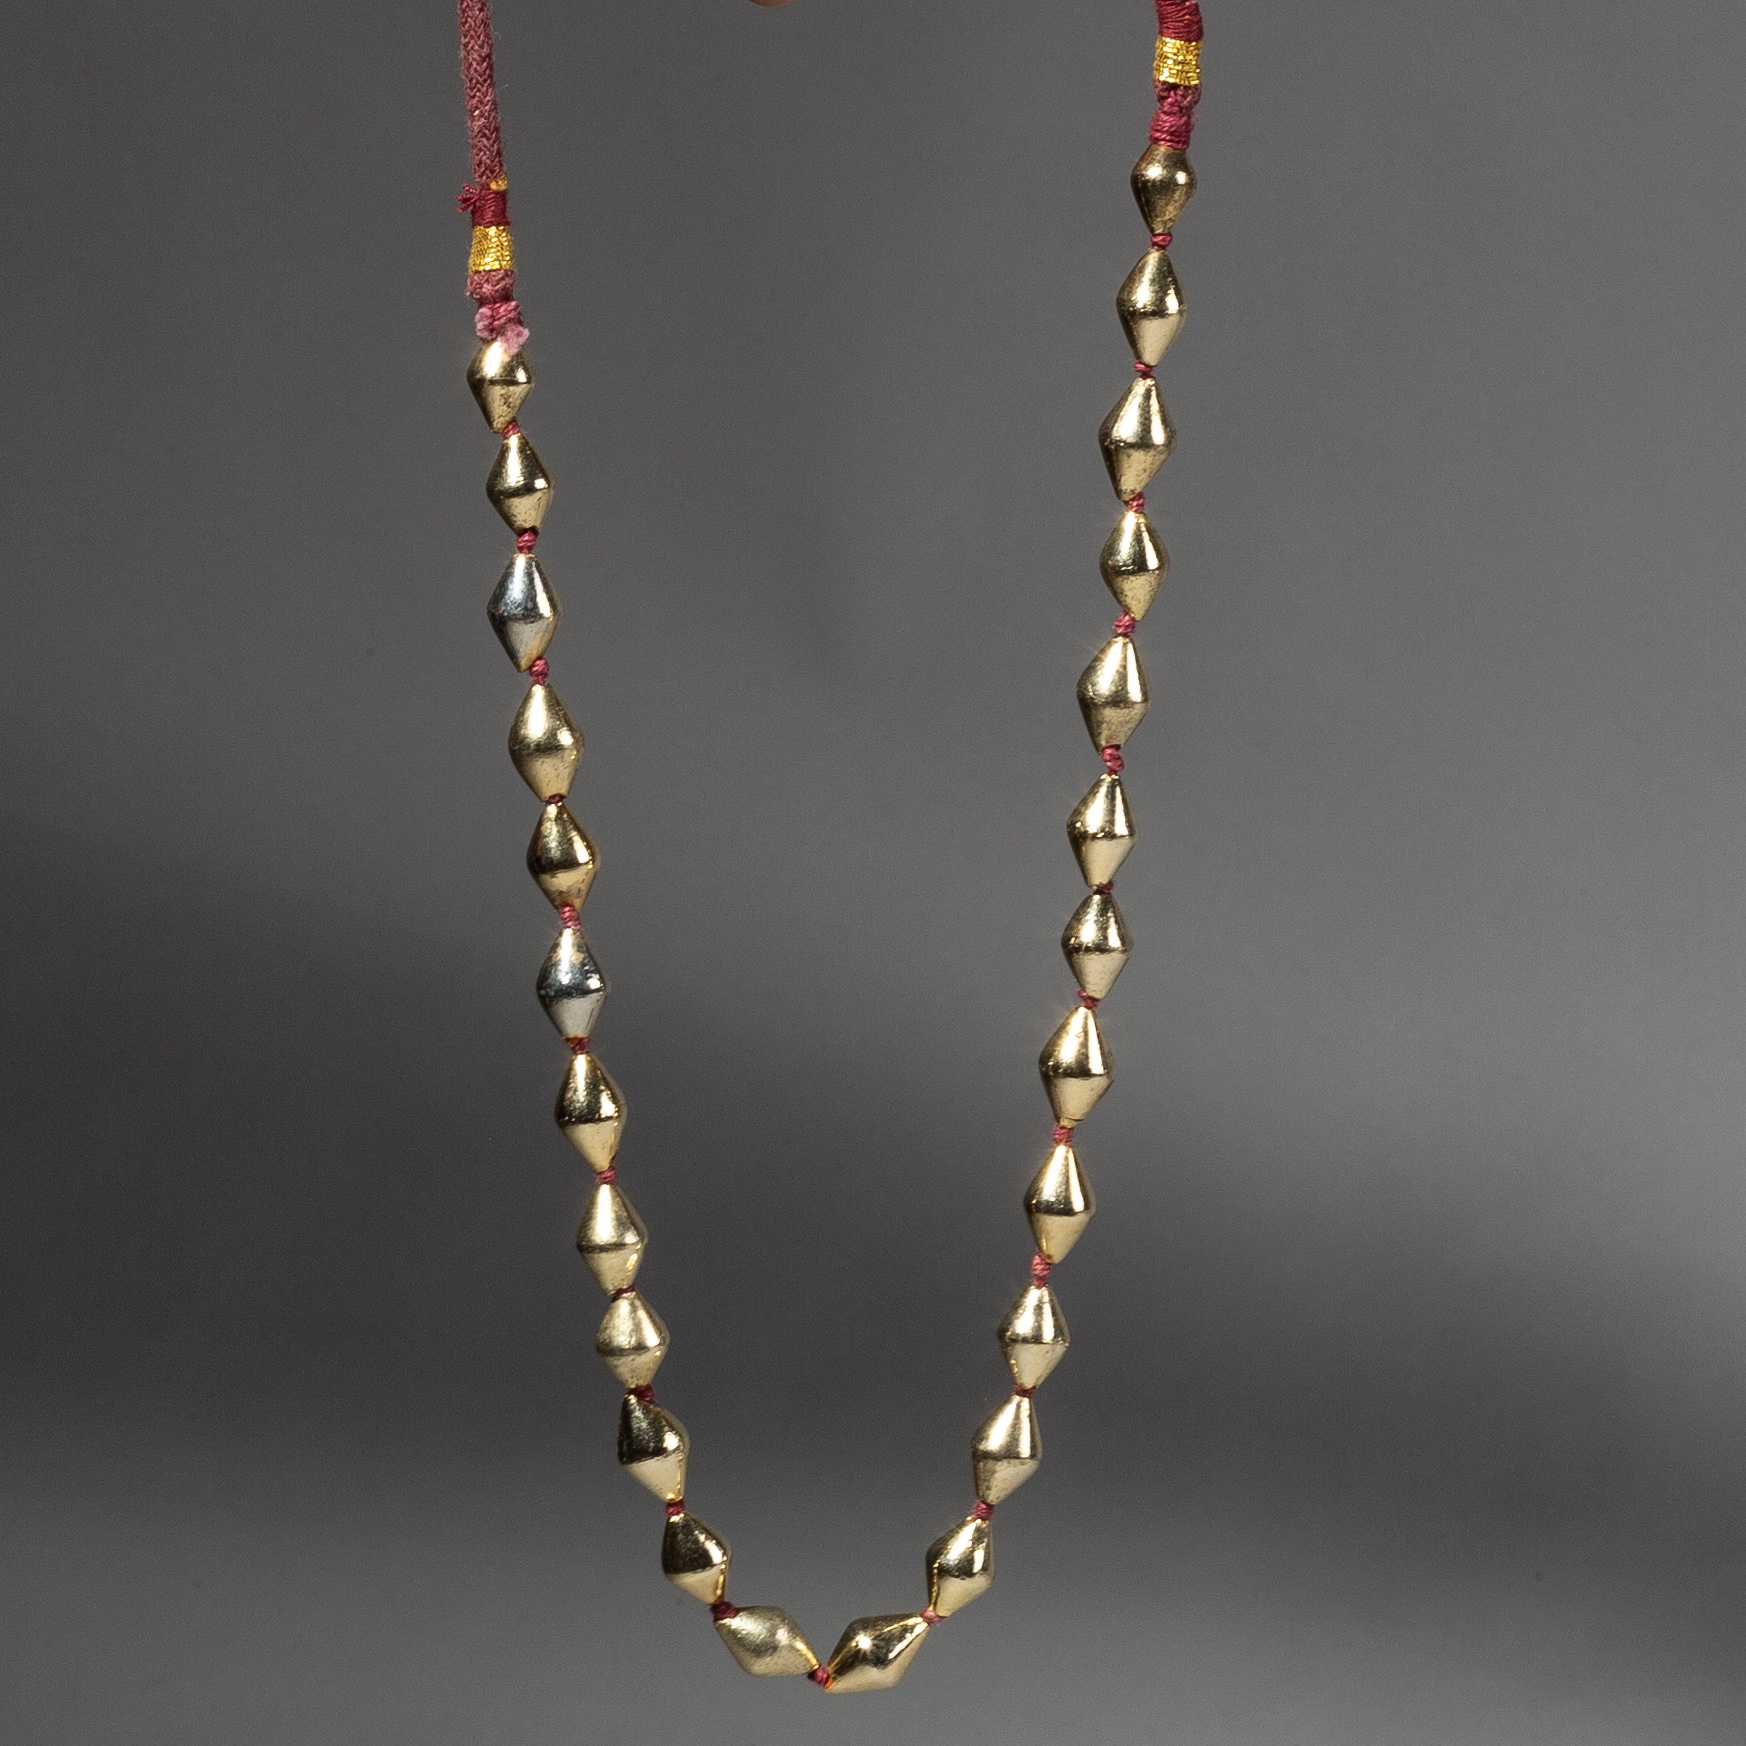 AN ELEGANT GUILDED GOLD NECKLACE WITH BICONE BEADS FROM AFGANISTAN ( No 2250 )